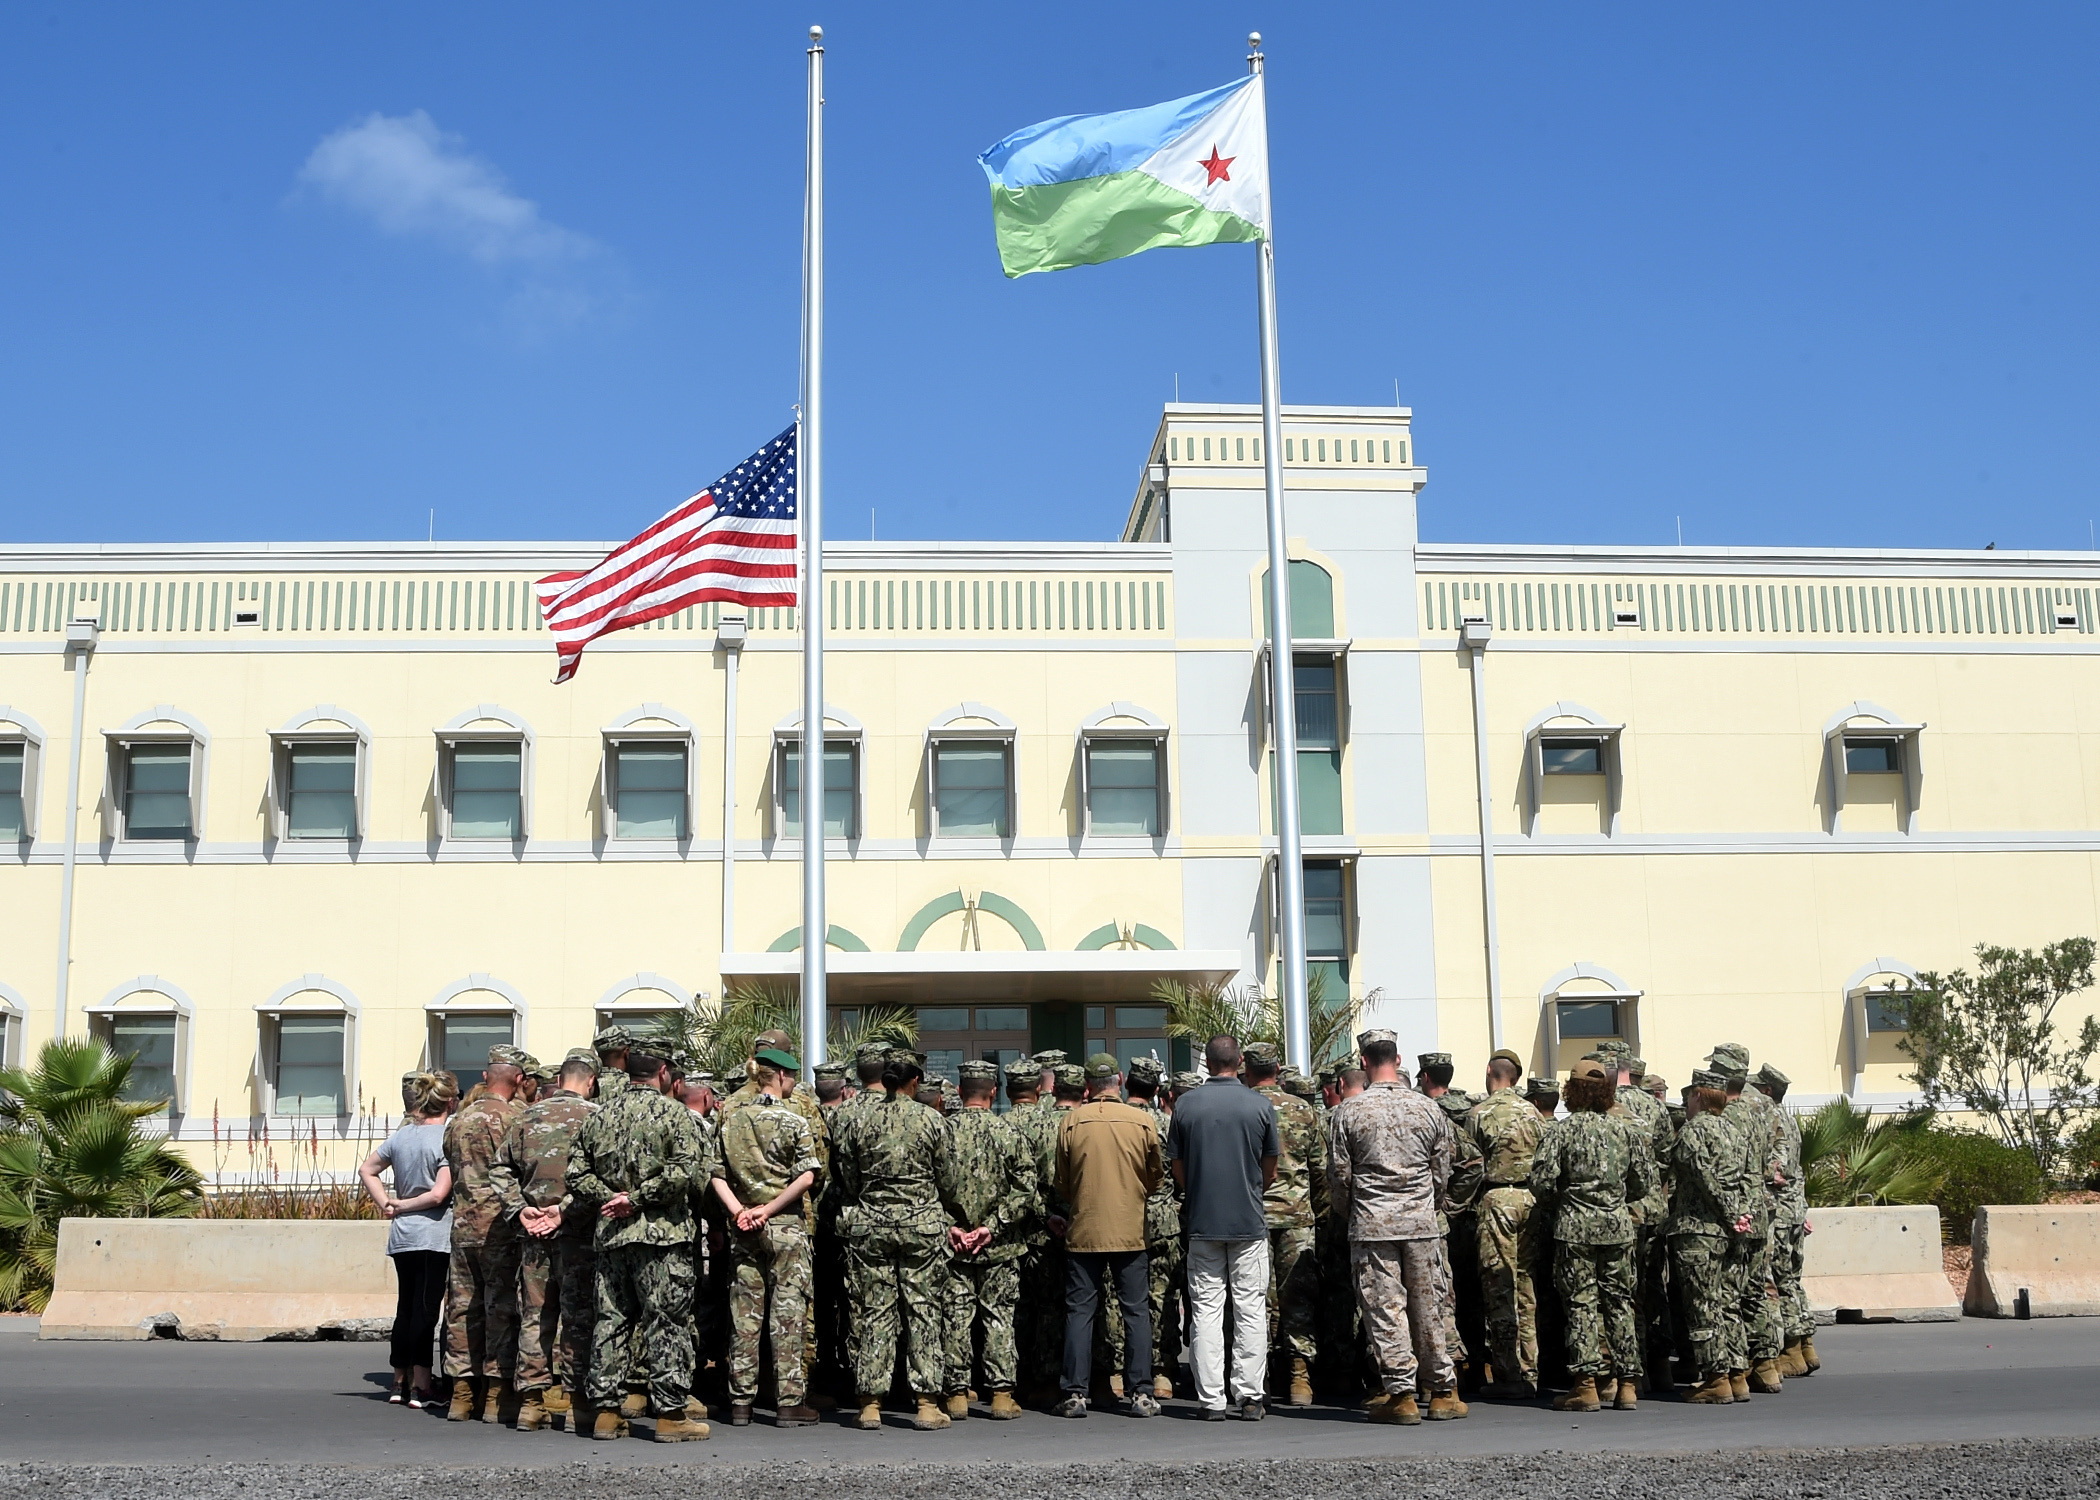 Joint forces from Combined Joint Task Force-Horn of Africa gather around the flagpoles at Camp Lemonnier, Djibouti, during a ceremony honoring the late U.S. President George H.W. Bush at Camp Lemonnier, Djibouti, Dec. 5, 2018. (U.S. Navy Photo by Mass Communication Specialist 1st Class Nick Scott/released)